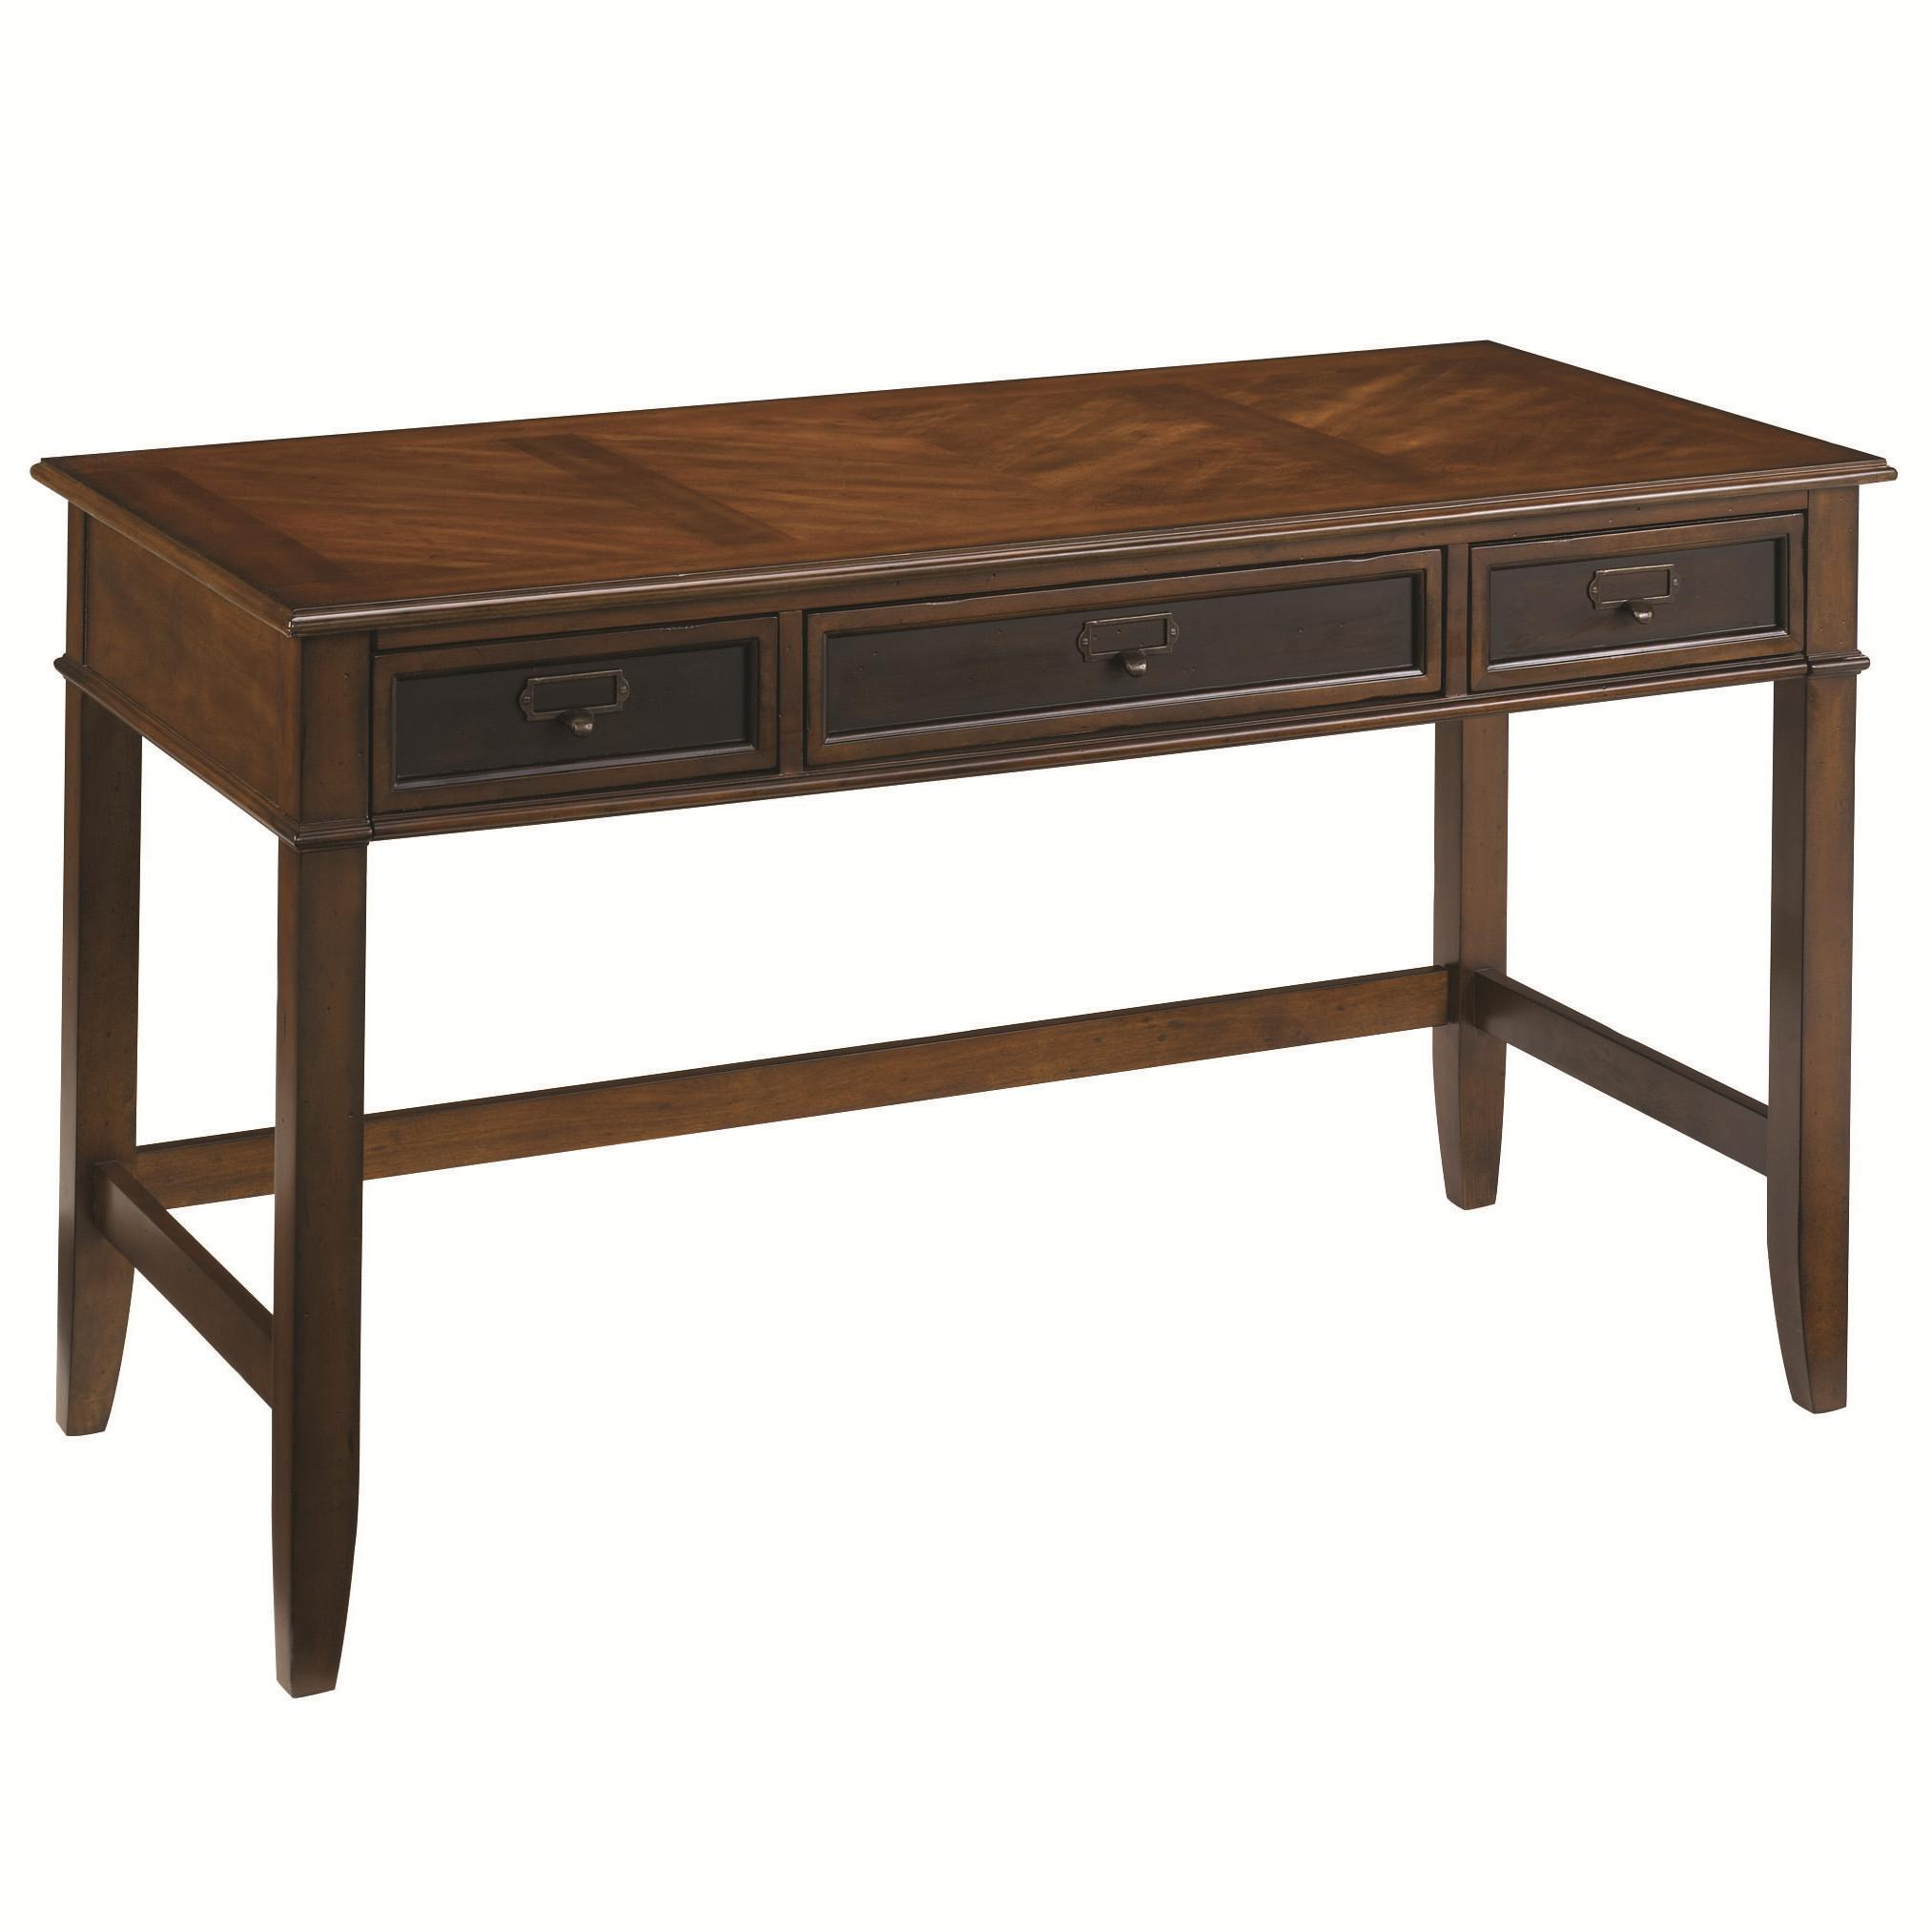 Hammary Mercantile Desk - Item Number: 050-940